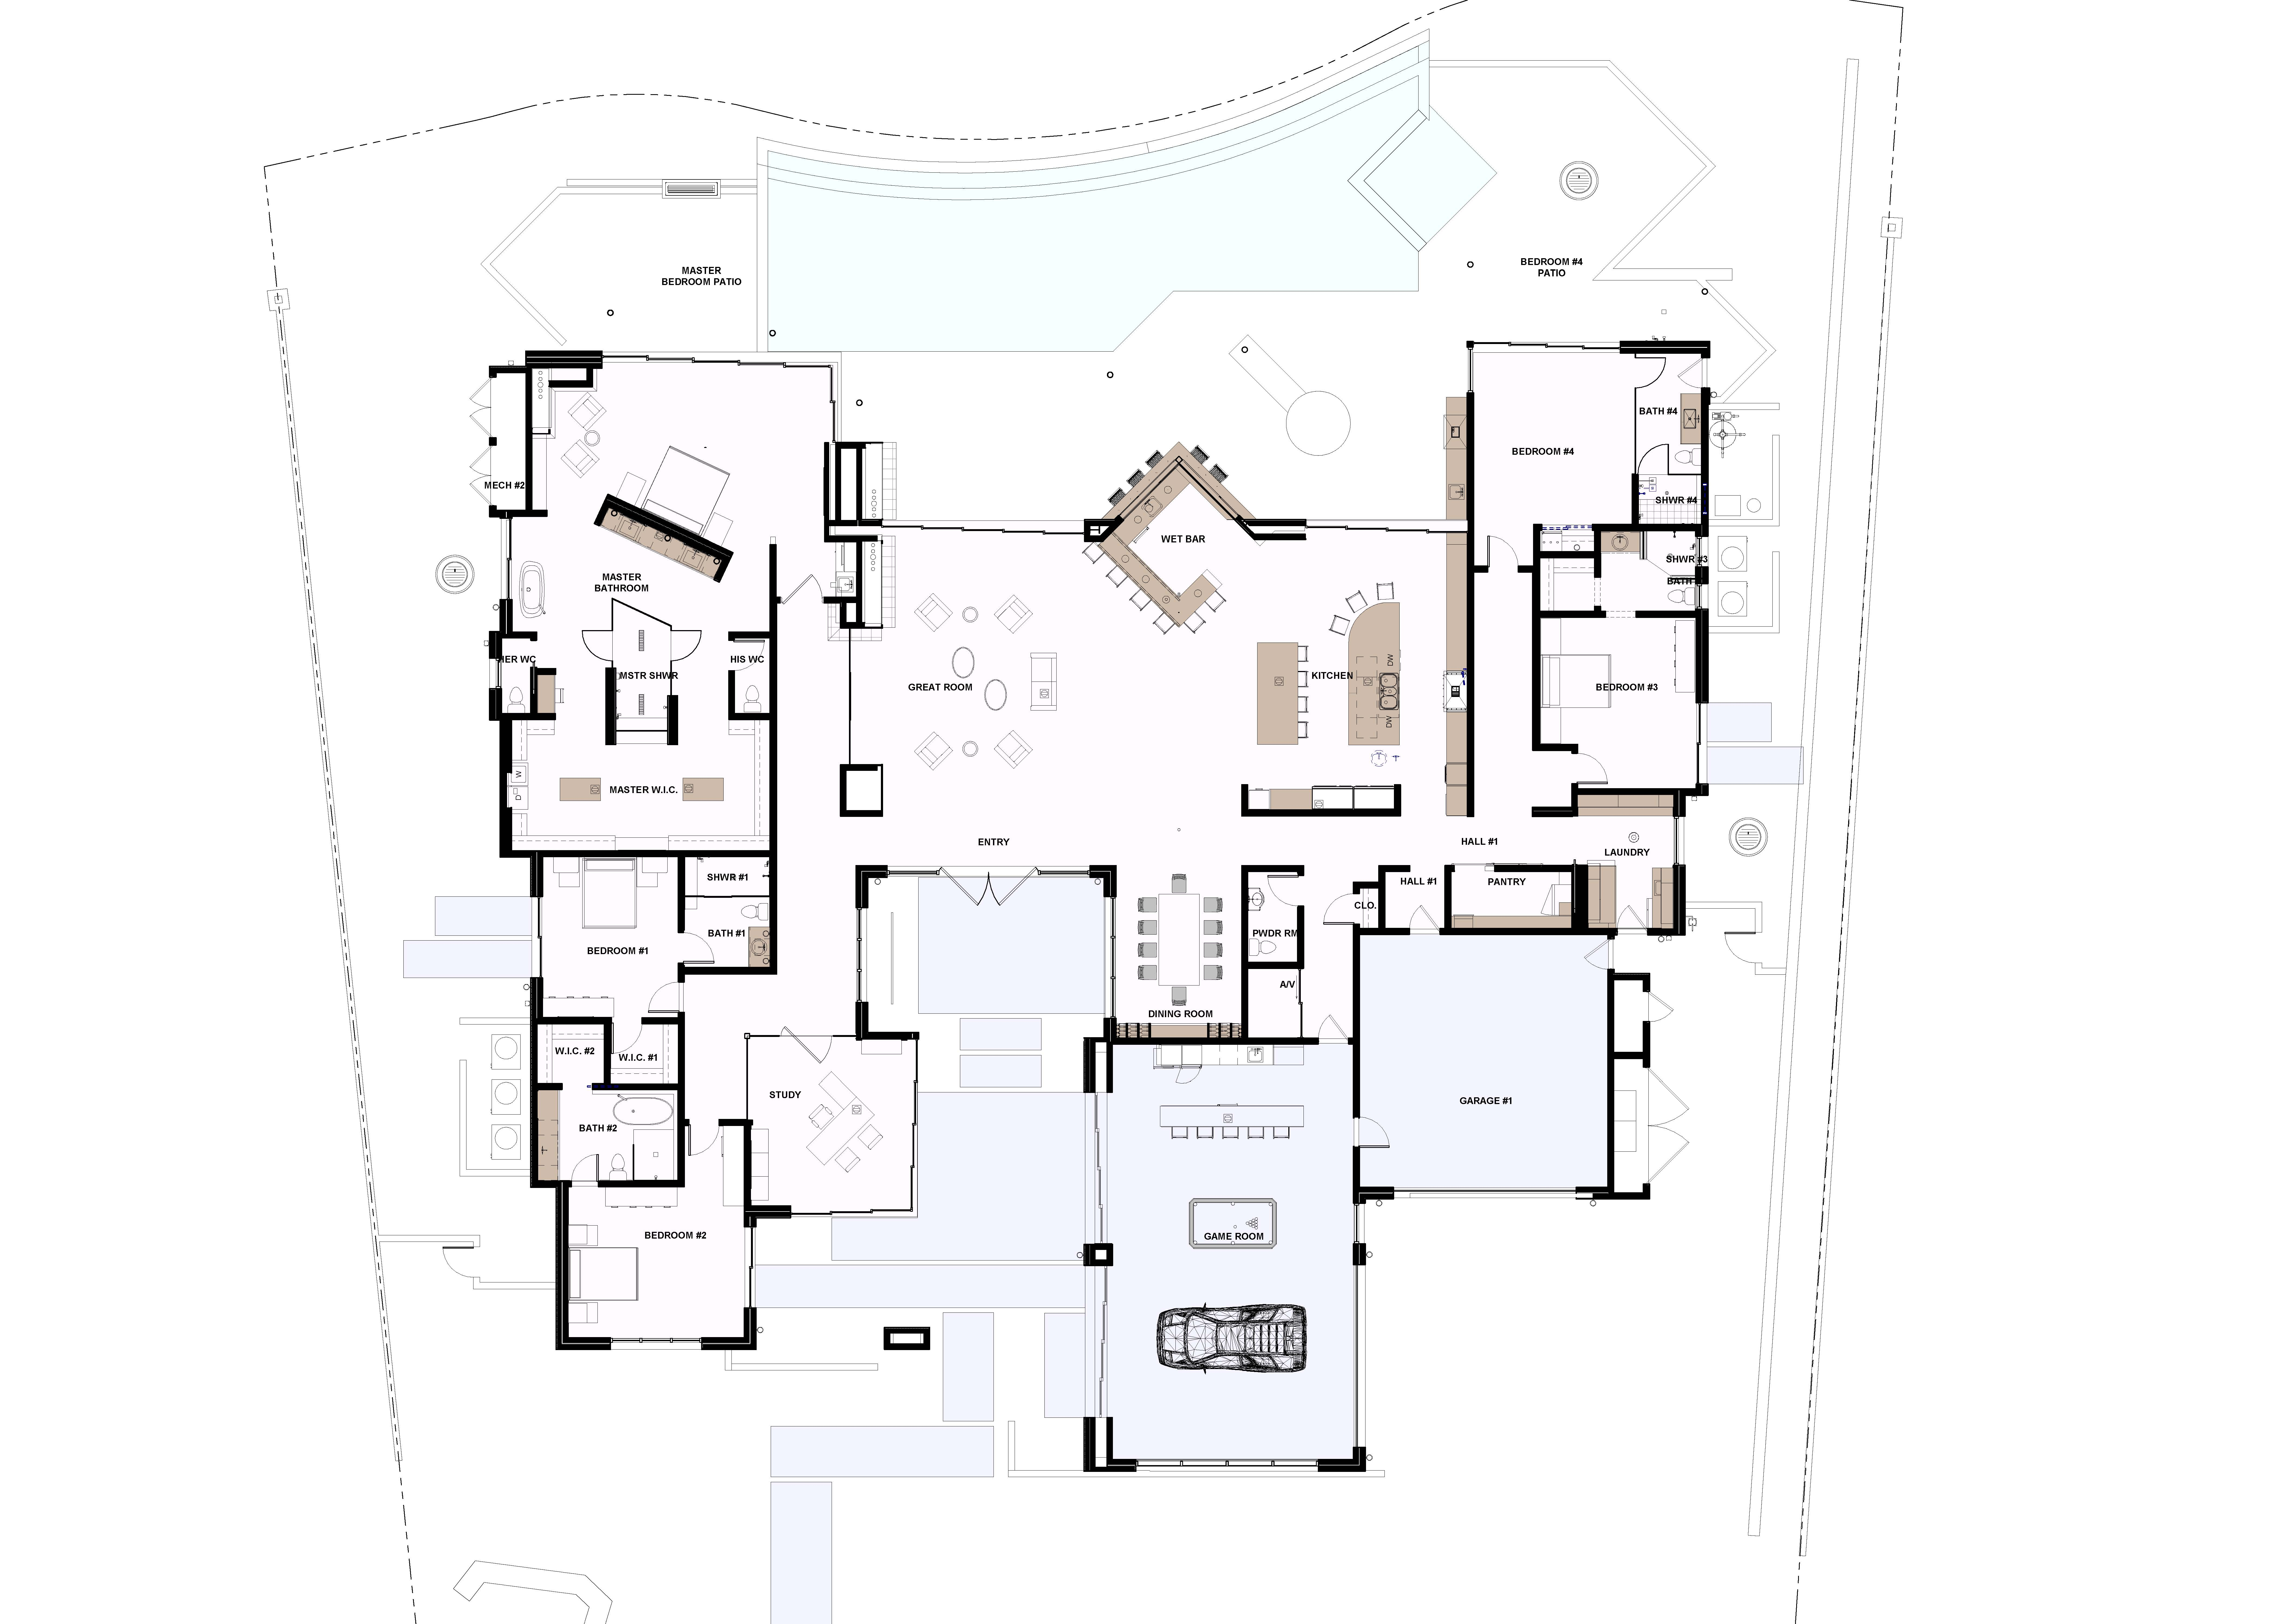 2019 The New American Home Floor Plan | The New American Home Architectural Bath Home Floor Plans on architectural home design, architectural luxury homes, architectural home decor, architectural home interiors, architectural digest home plans, architectural home blueprints, architectural home details, architectural home photography, architectural kitchen plans,